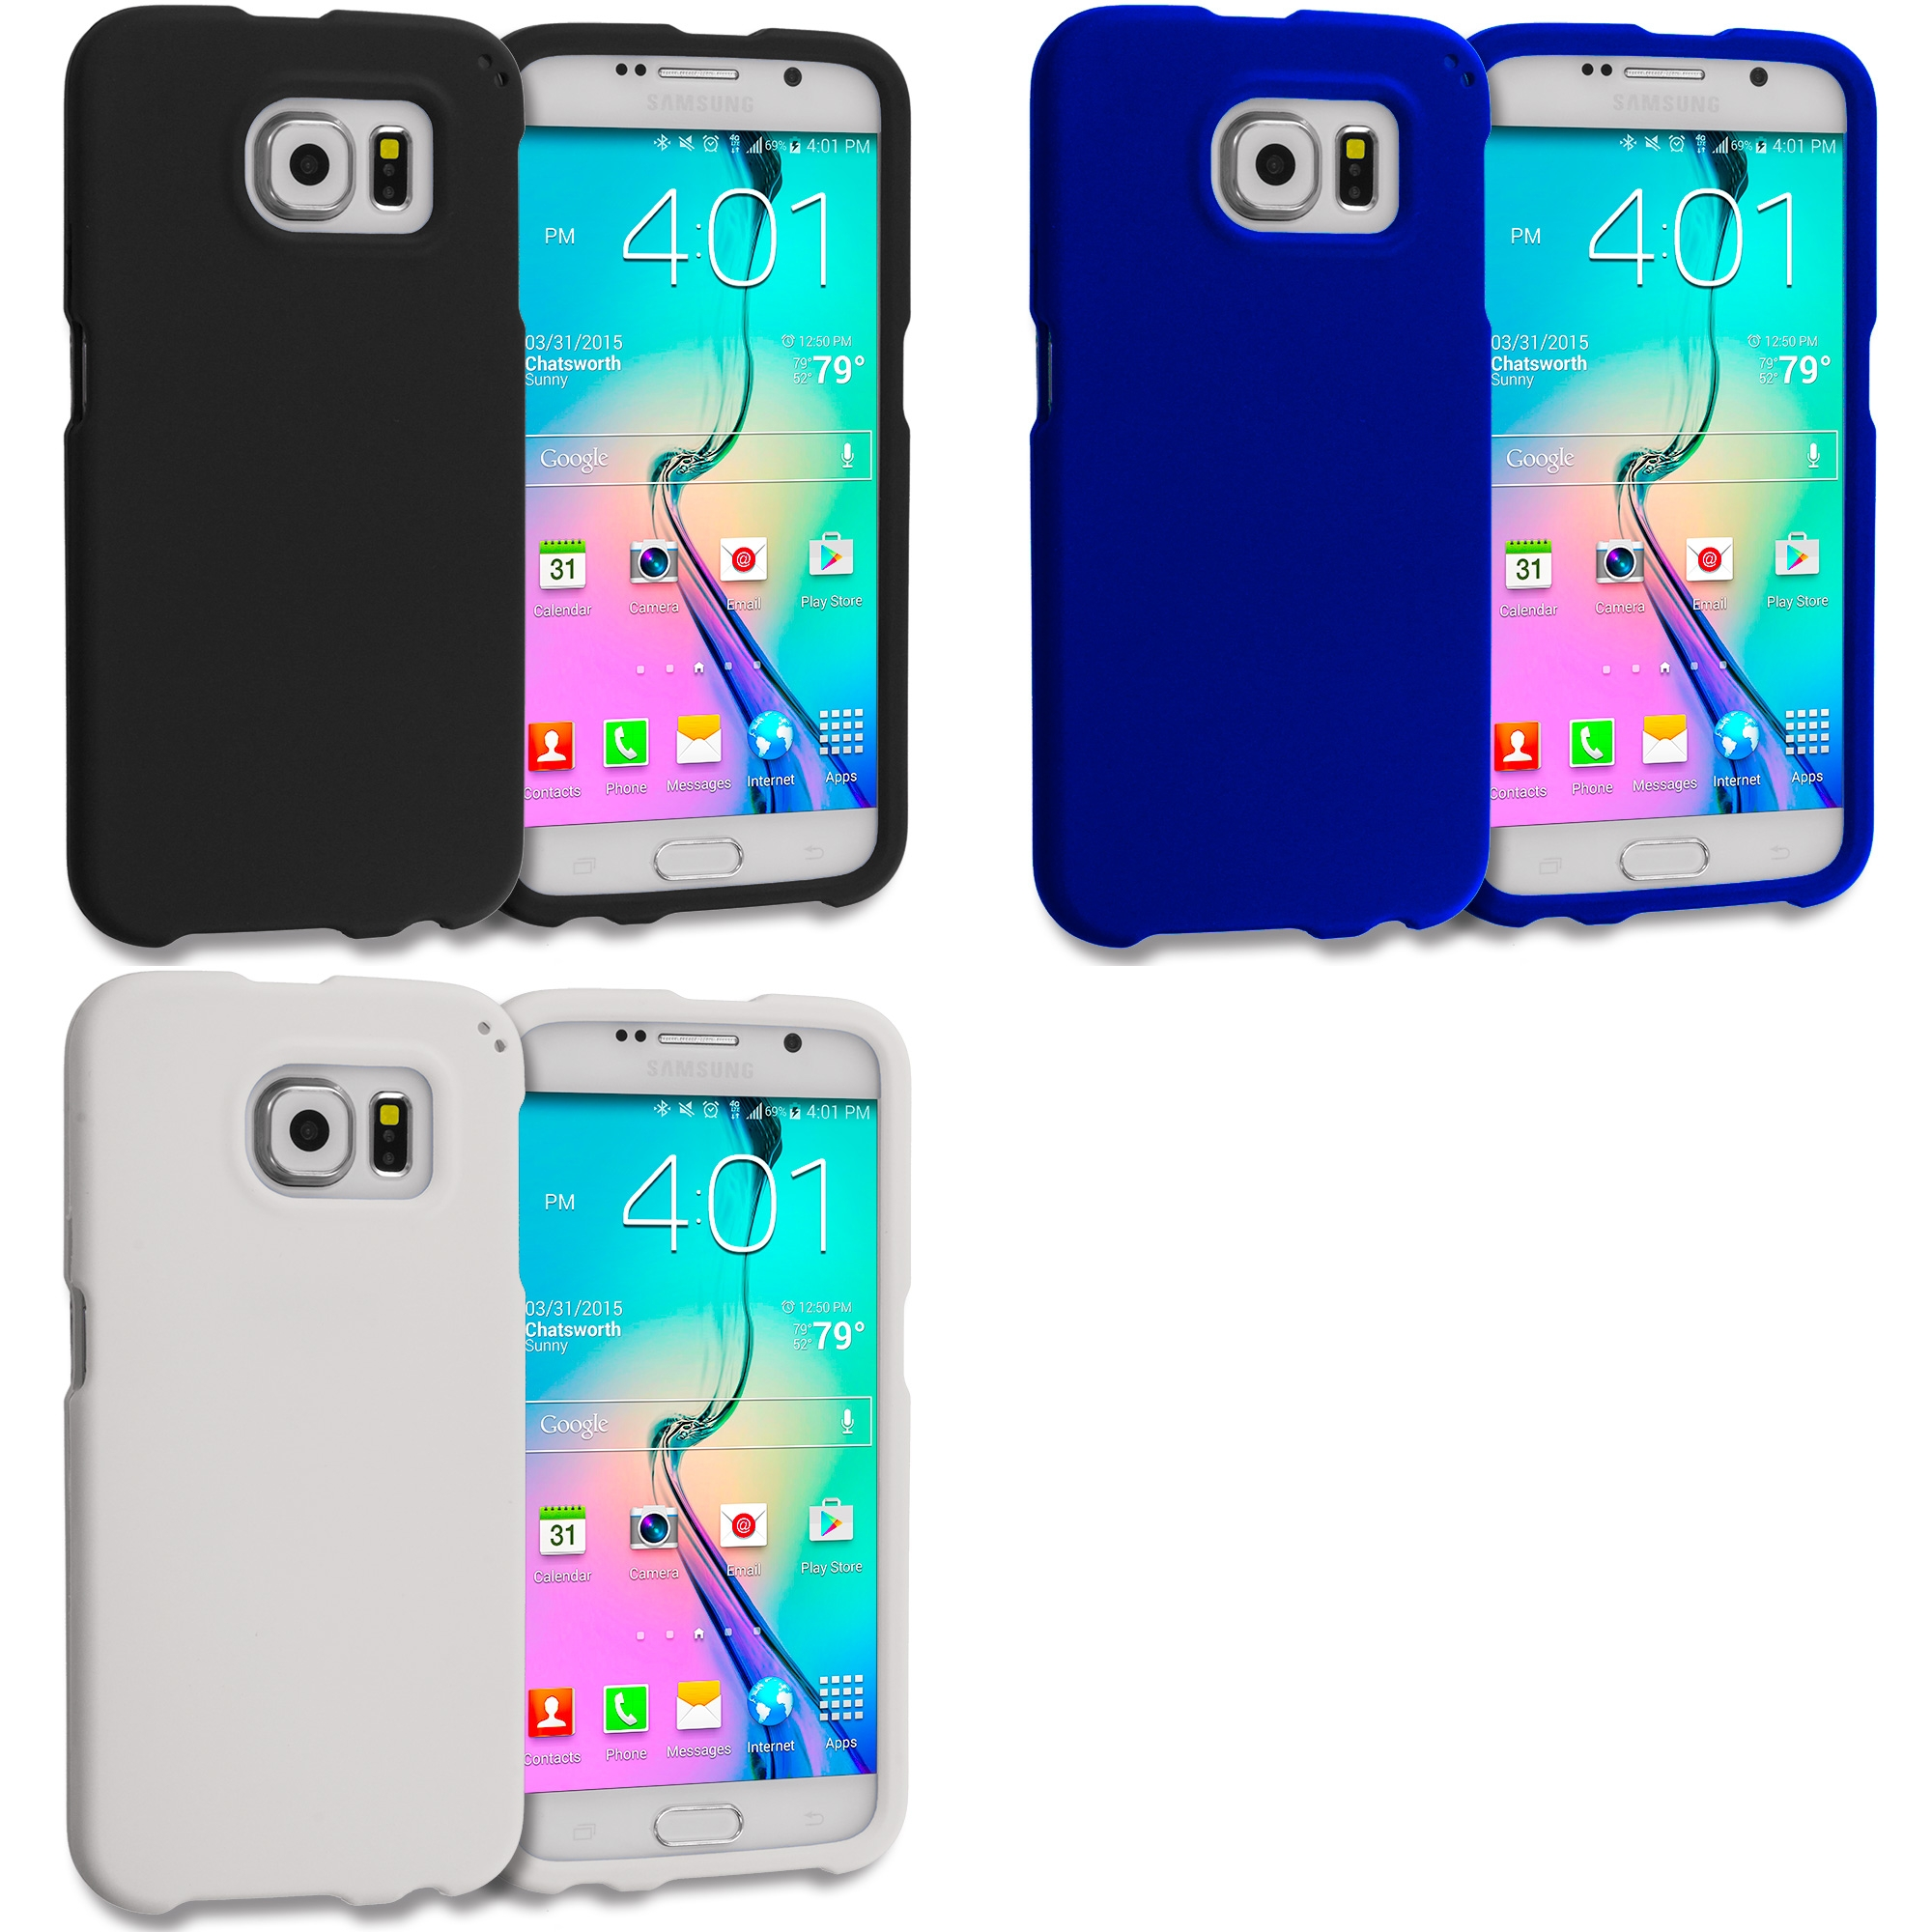 Samsung Galaxy S6 Combo Pack : Black Hard Rubberized Case Cover